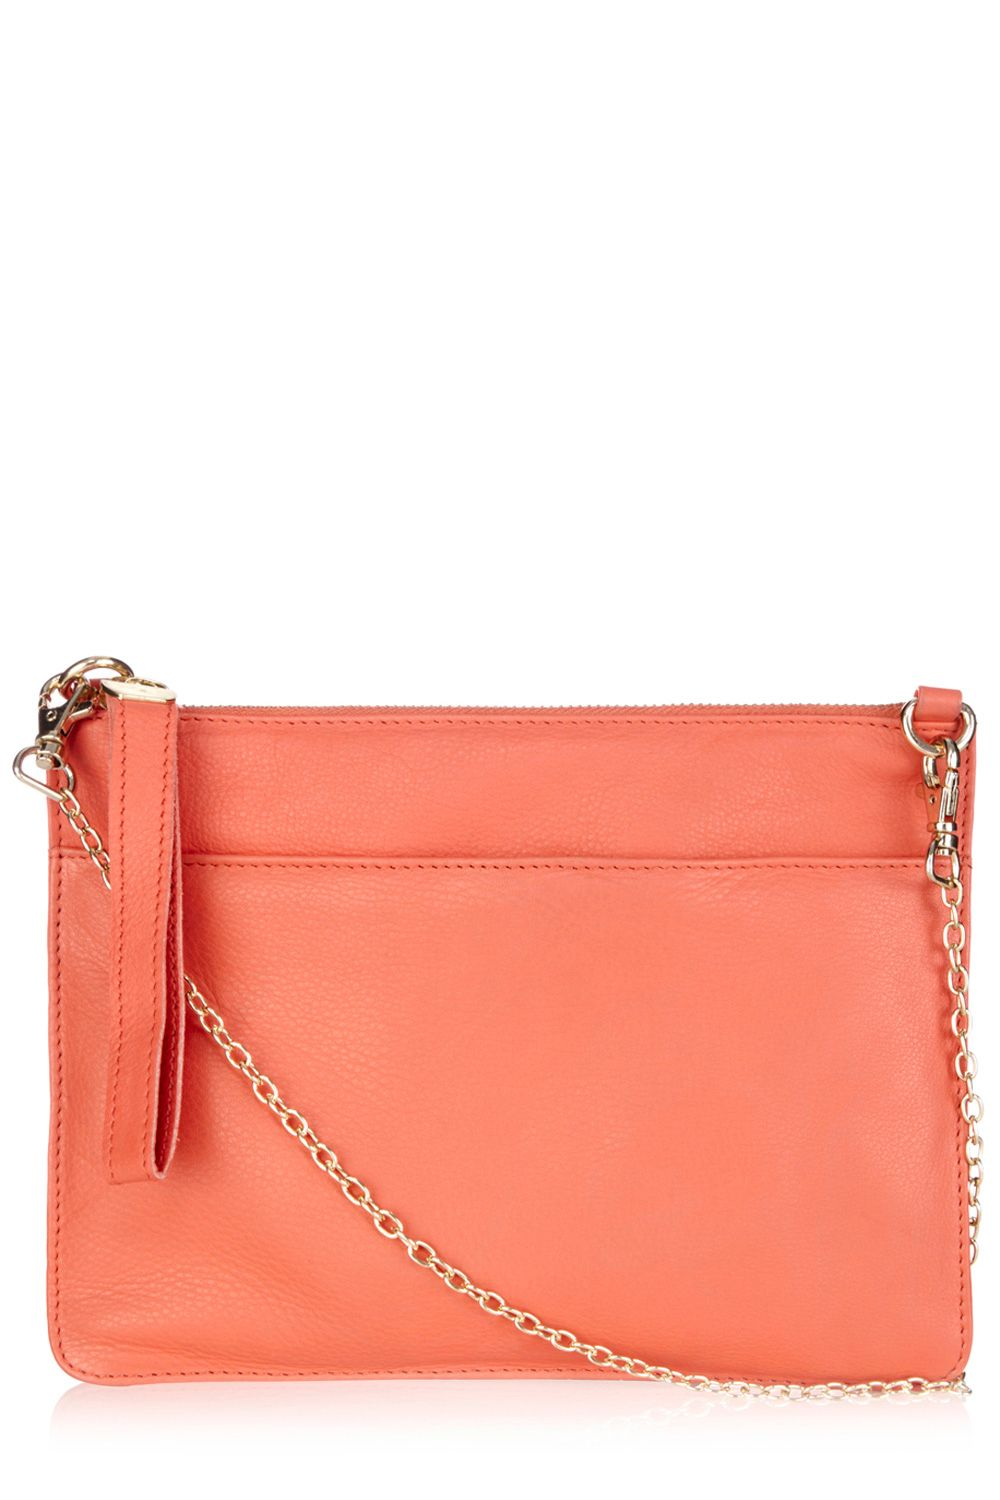 Stephanie small cross body bag